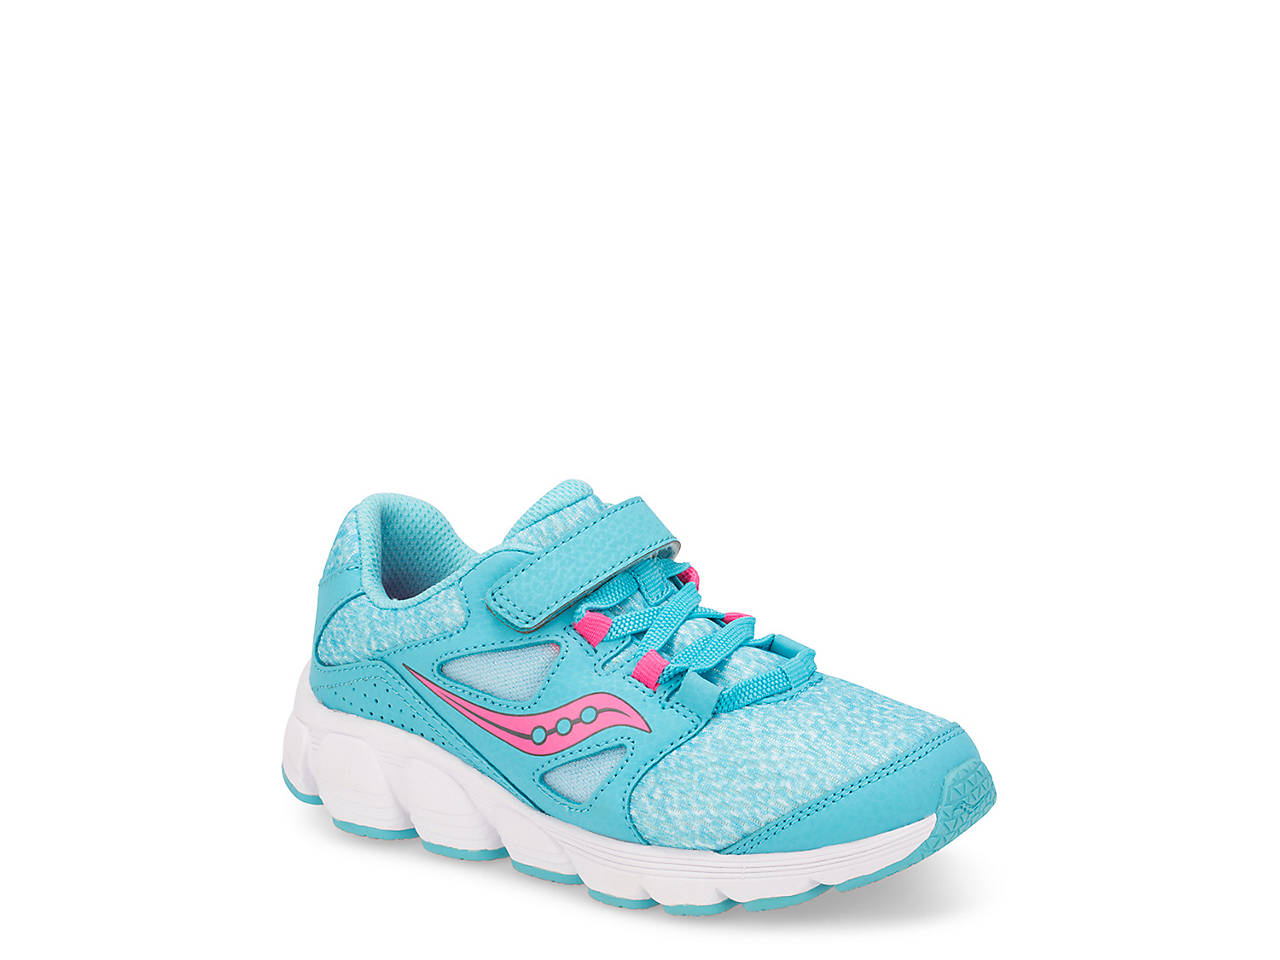 45eac6a8c736 Saucony Kotaro 4 Toddler   Youth Sneaker Kids Shoes